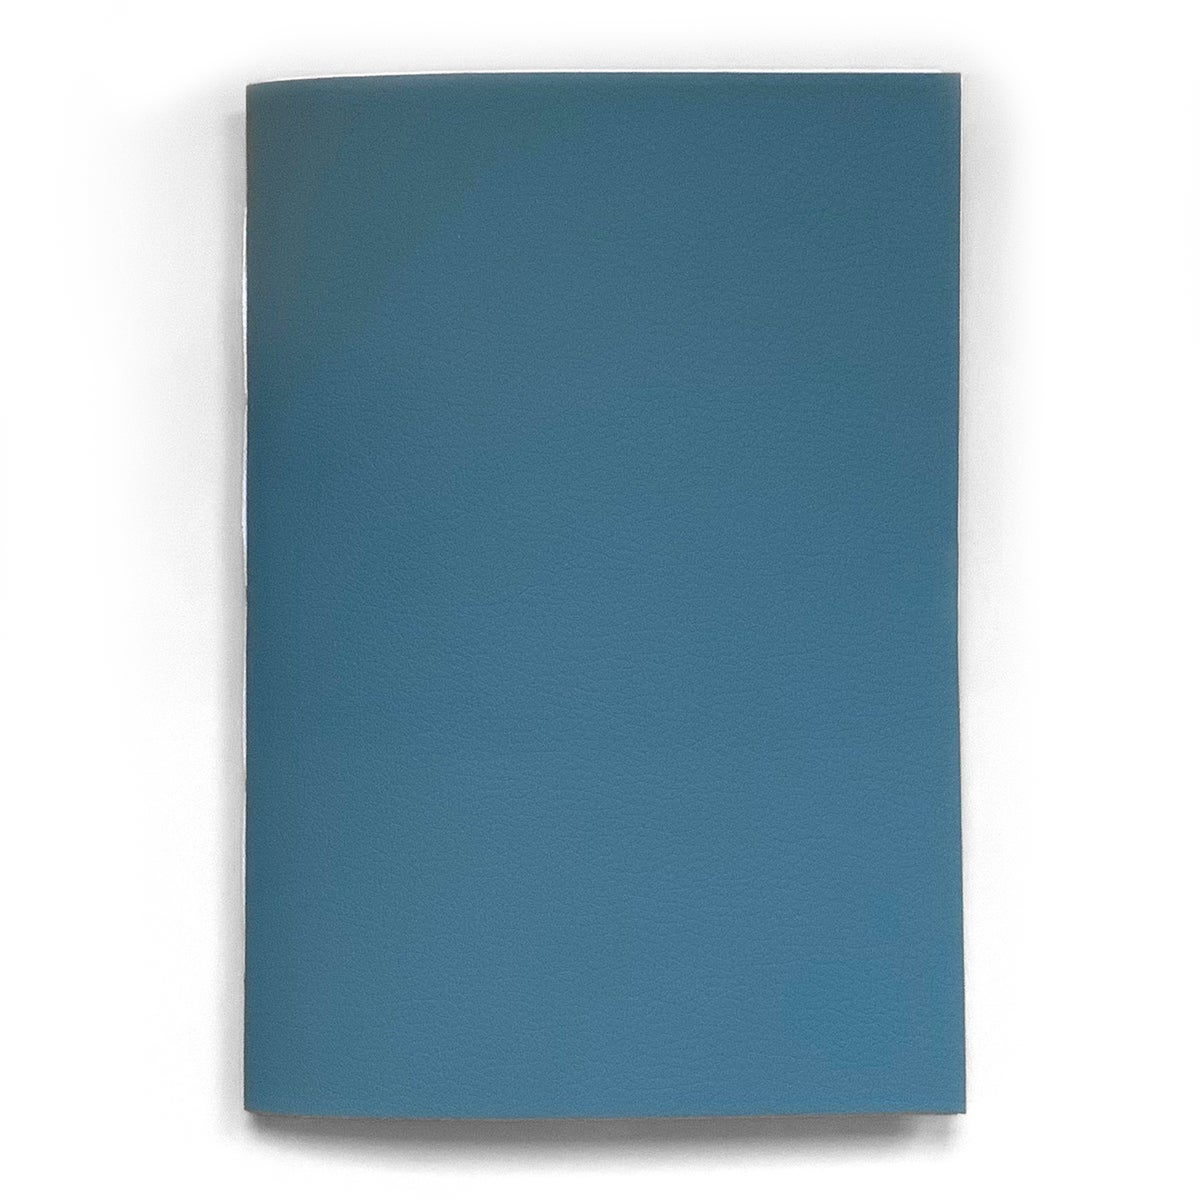 Image of vegan leather notebook – sky blue